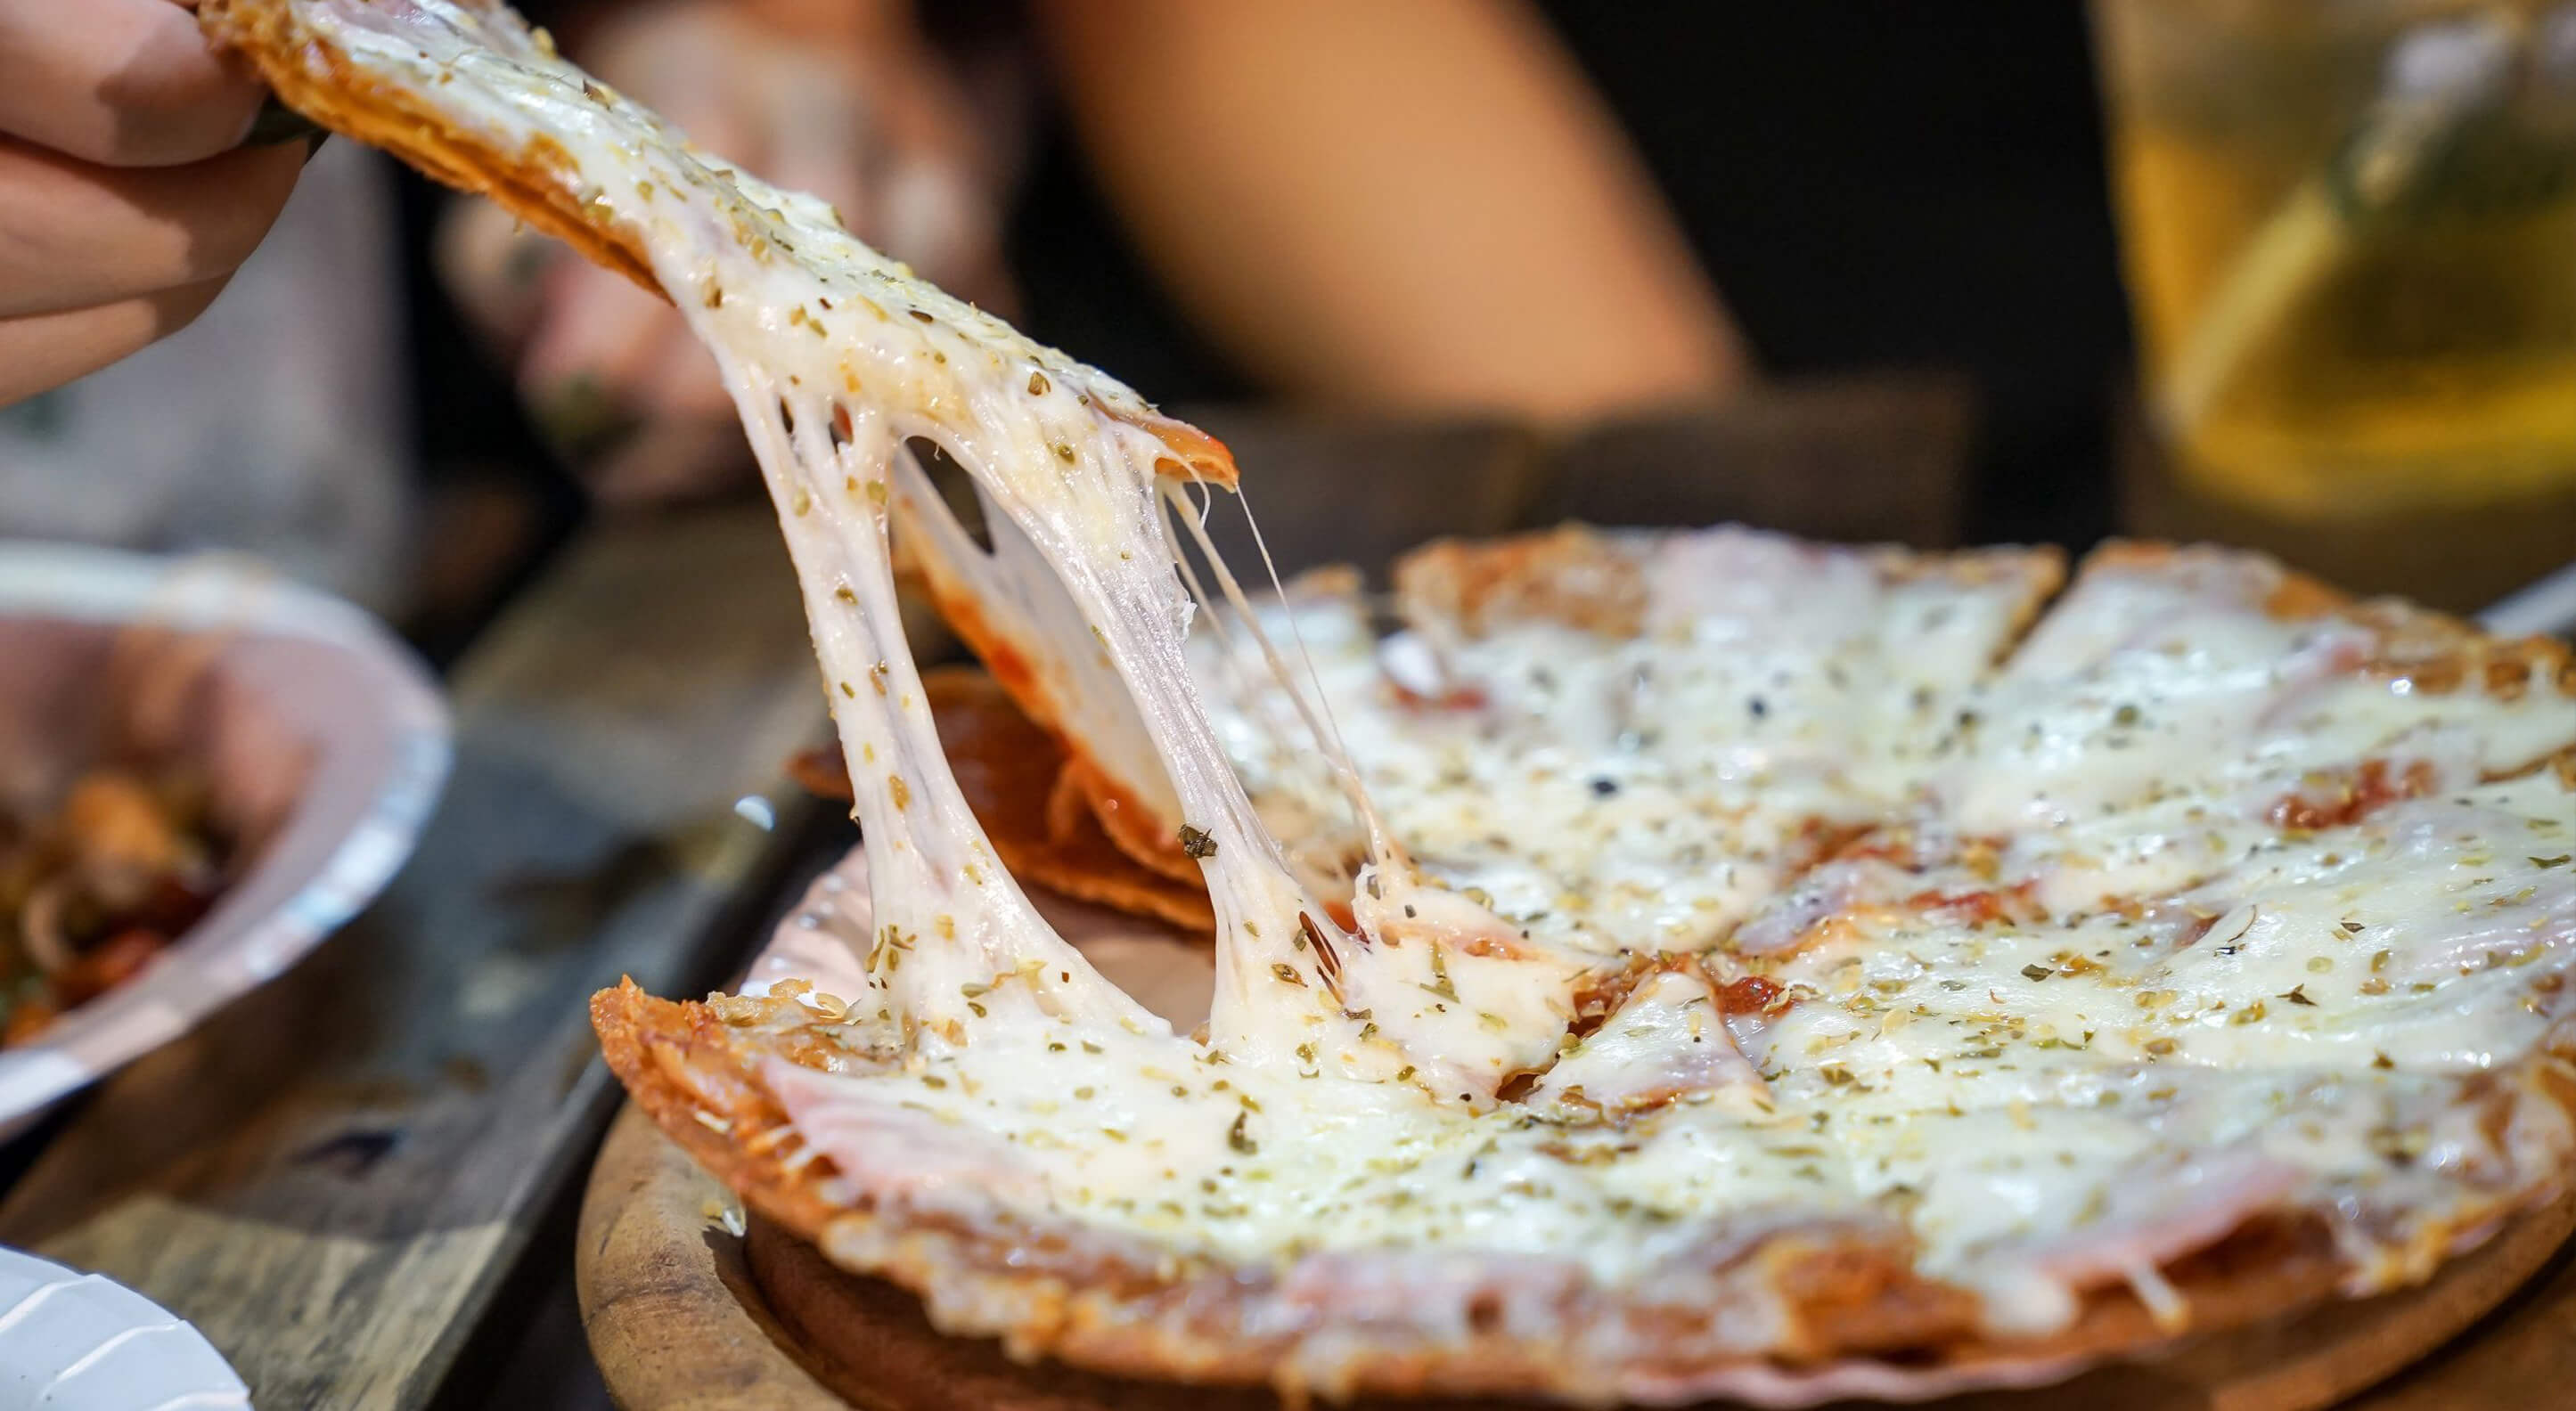 person's hand taking a slice of pizza from a pizza plate